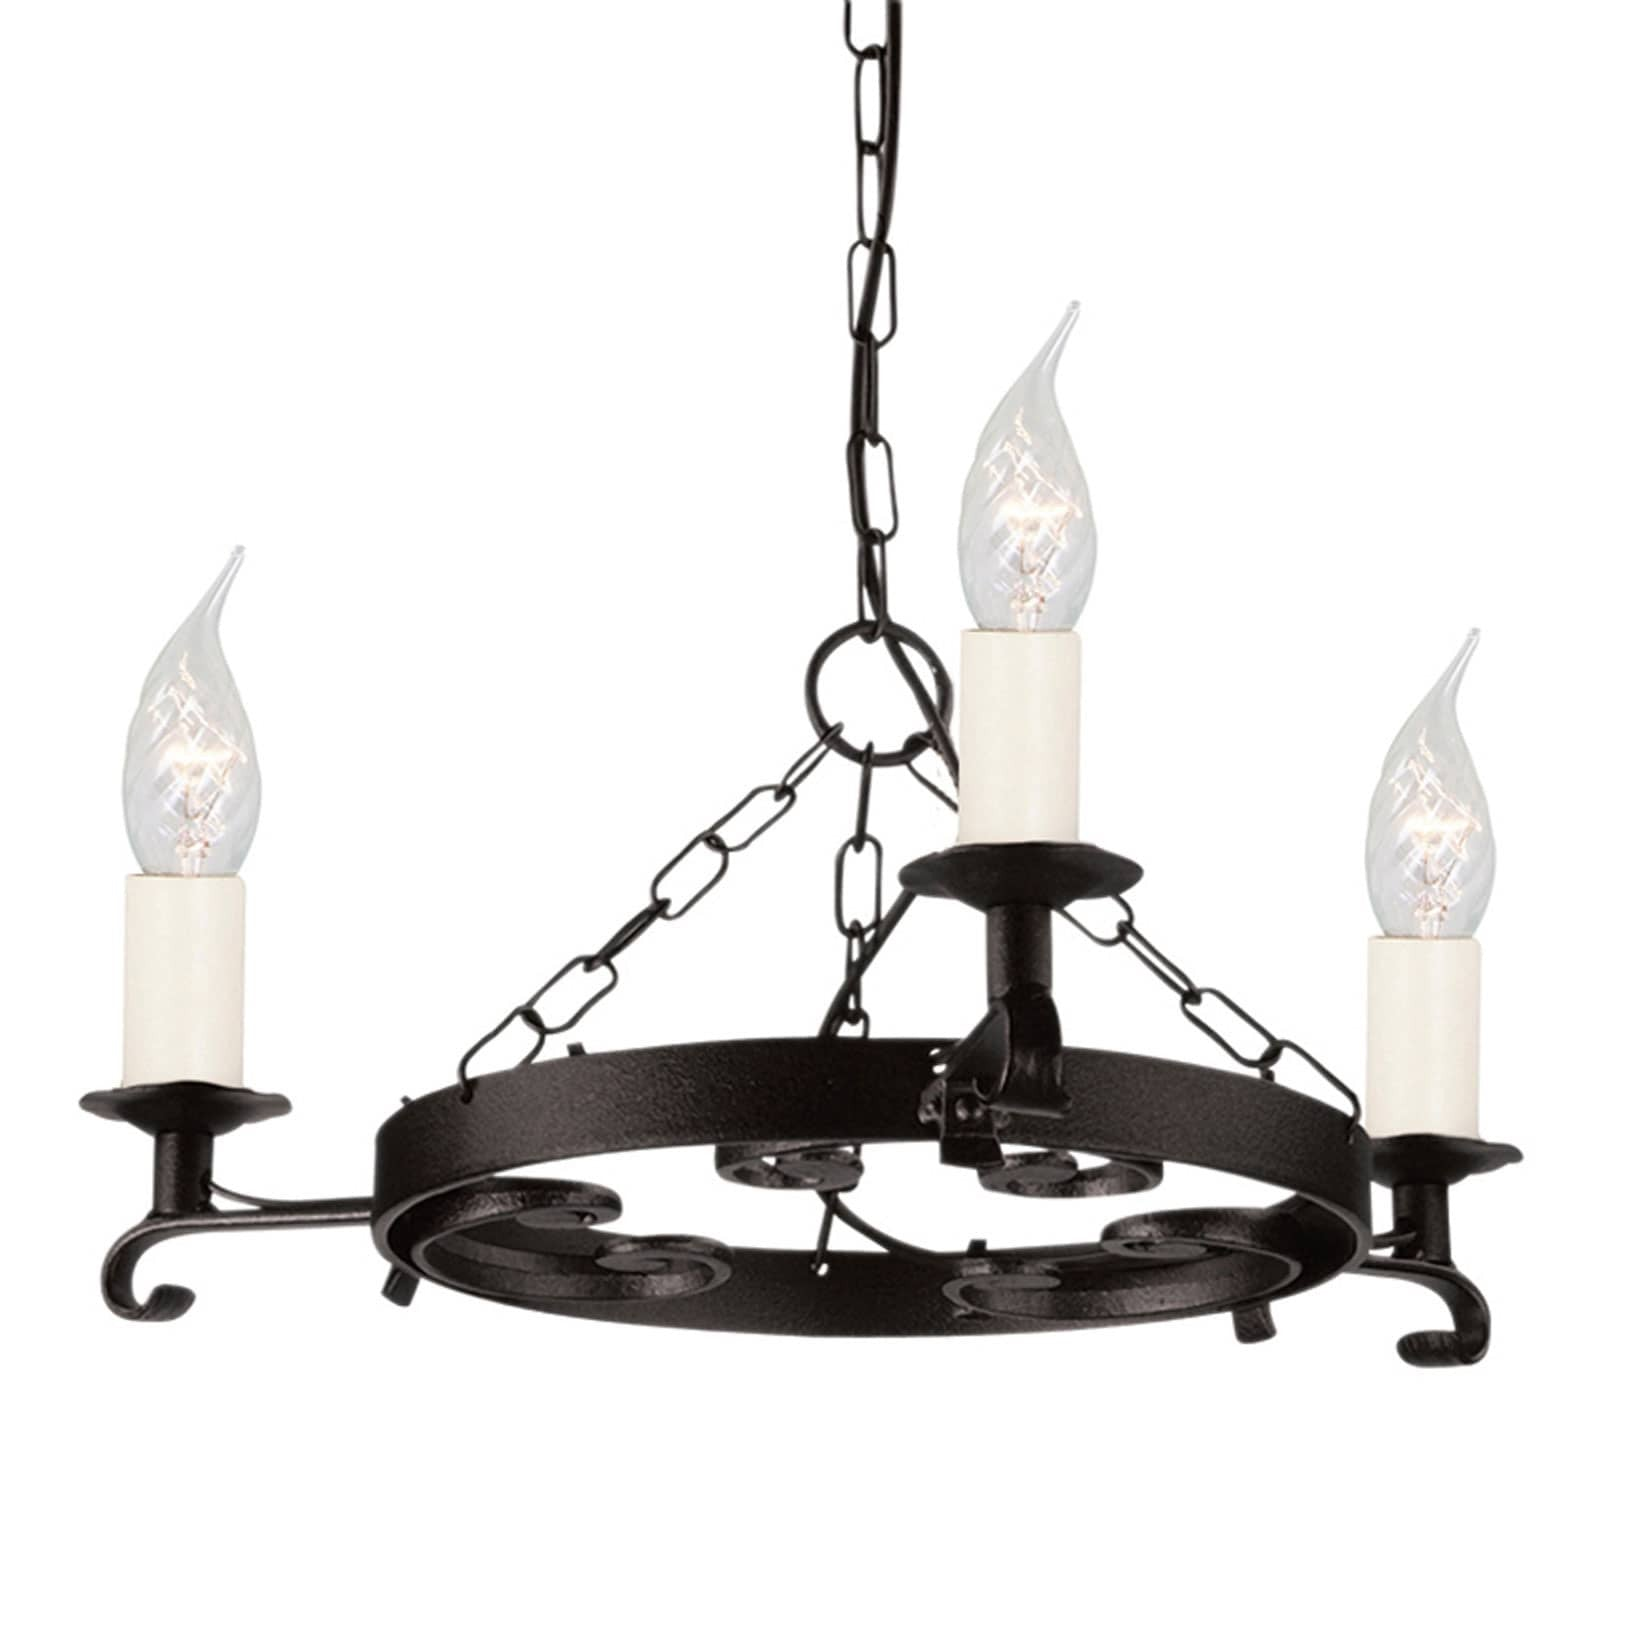 Elstead rectory 3 light black metal candle chandelier chandelier shack elstead rectory 3 light black metal candle chandelier ry3 black aloadofball Gallery